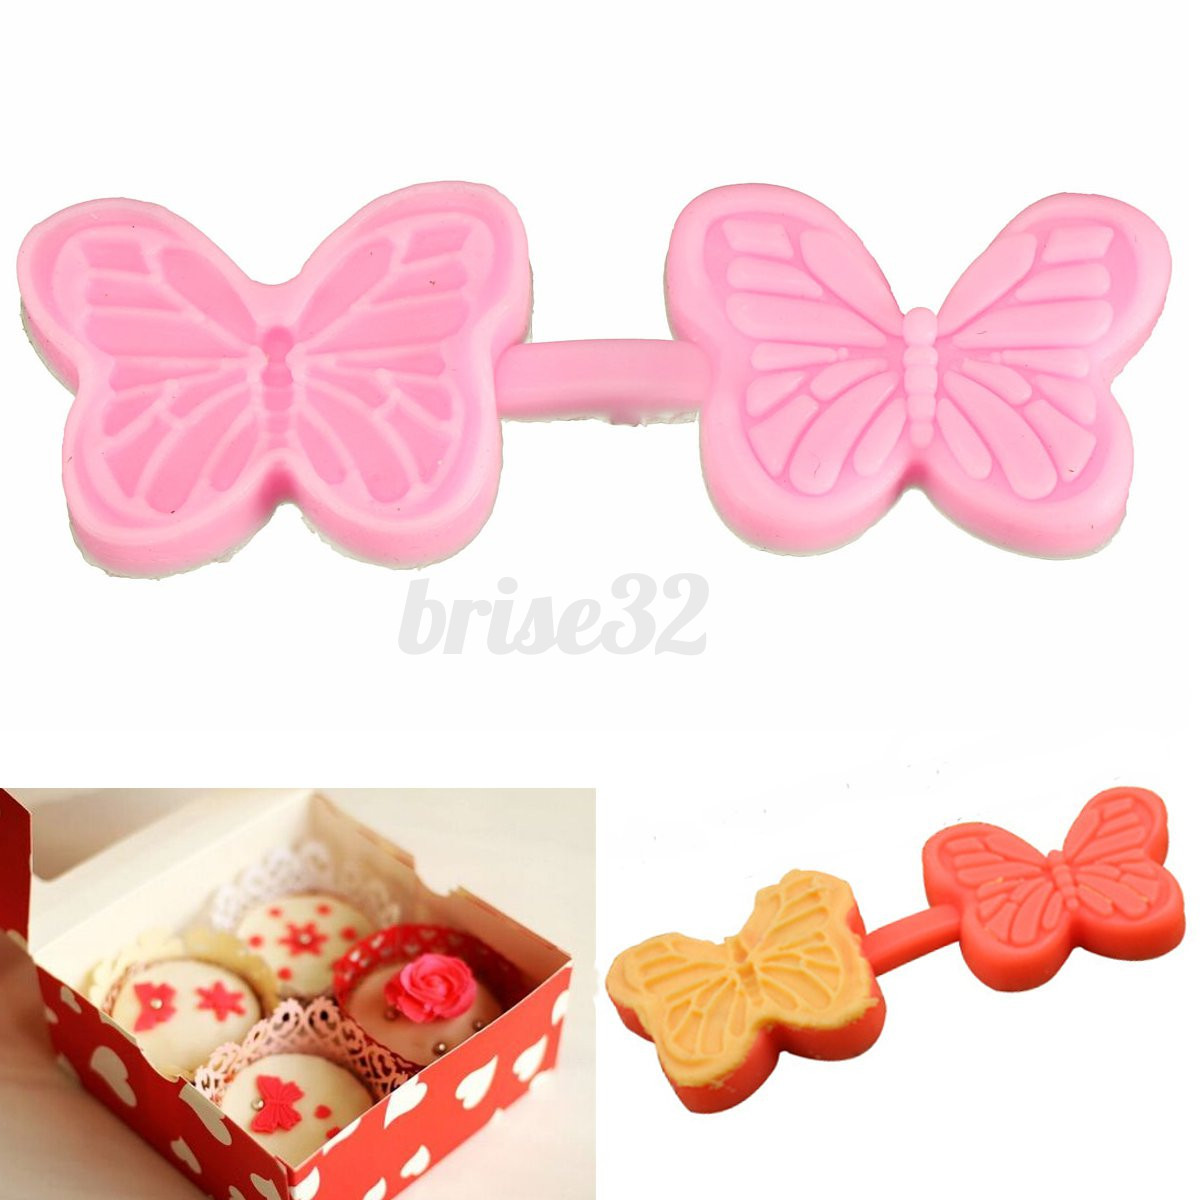 Silicone Butterfly Cake Fondant Decorating Baking Mold Mould DIY Sugar Craft